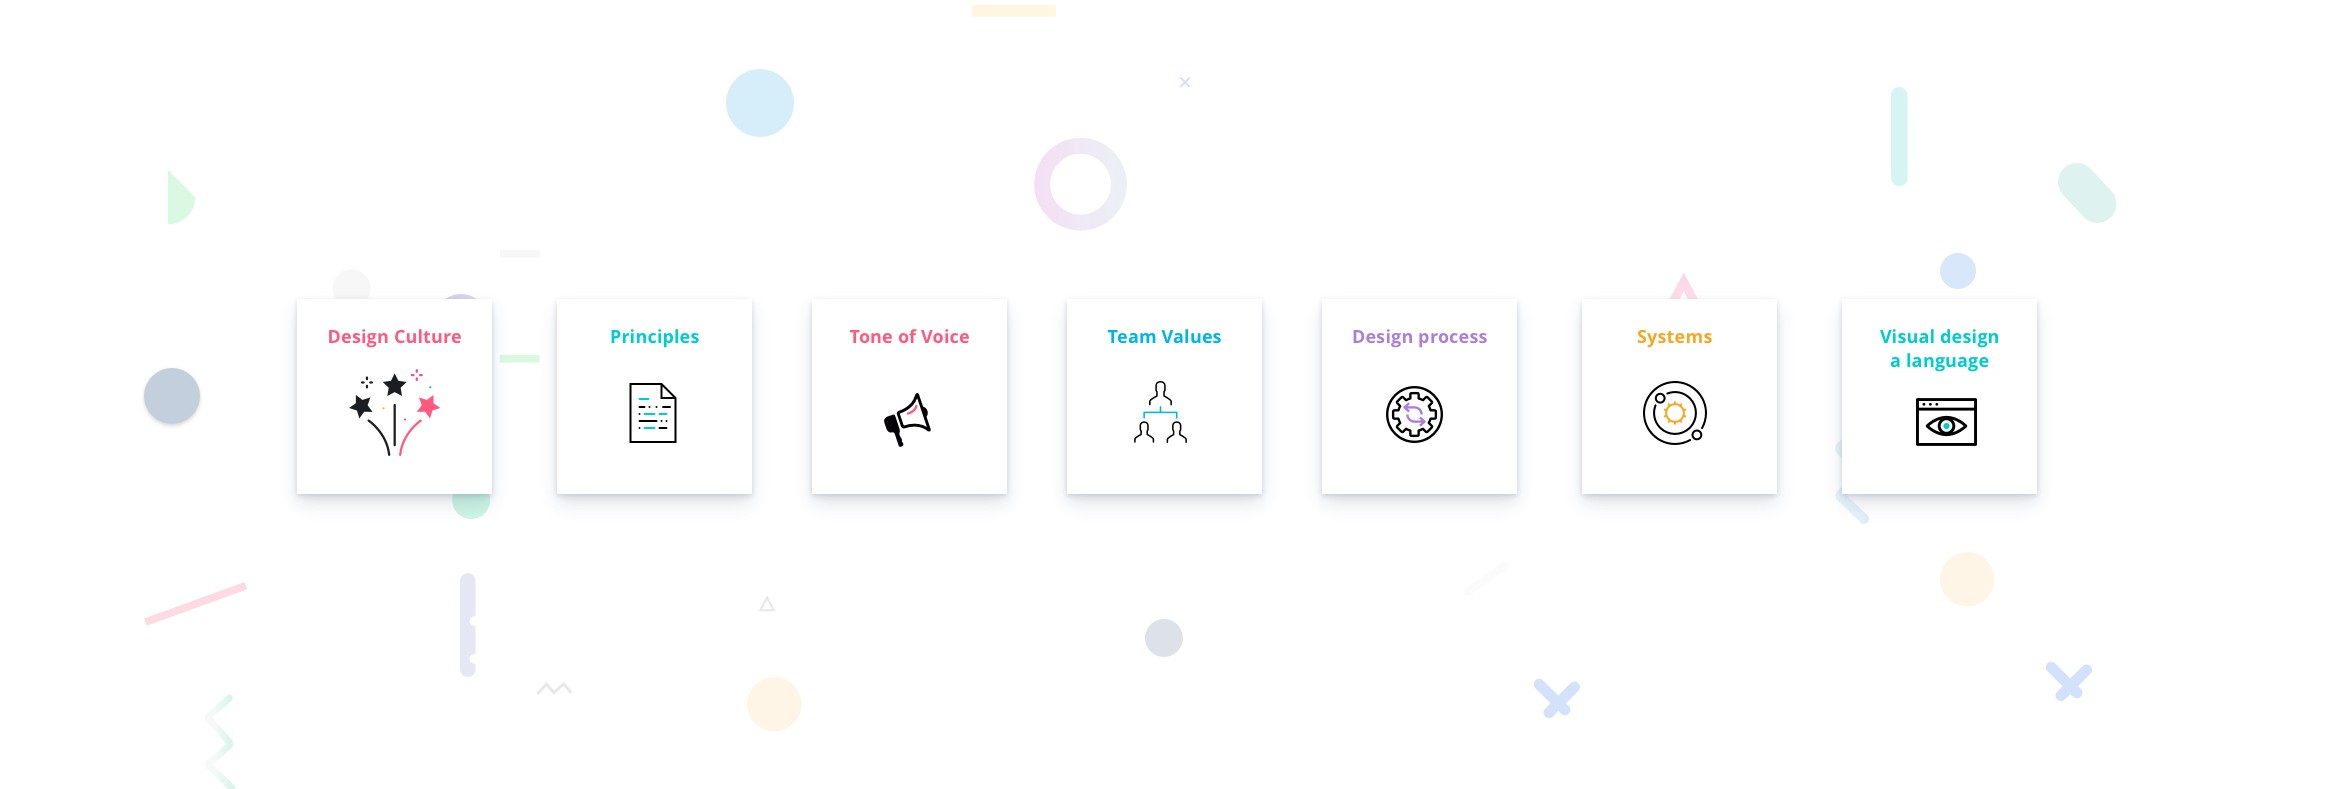 Setup A Design System Build A System That Provides A Unified By Marco Lopes Prototypr